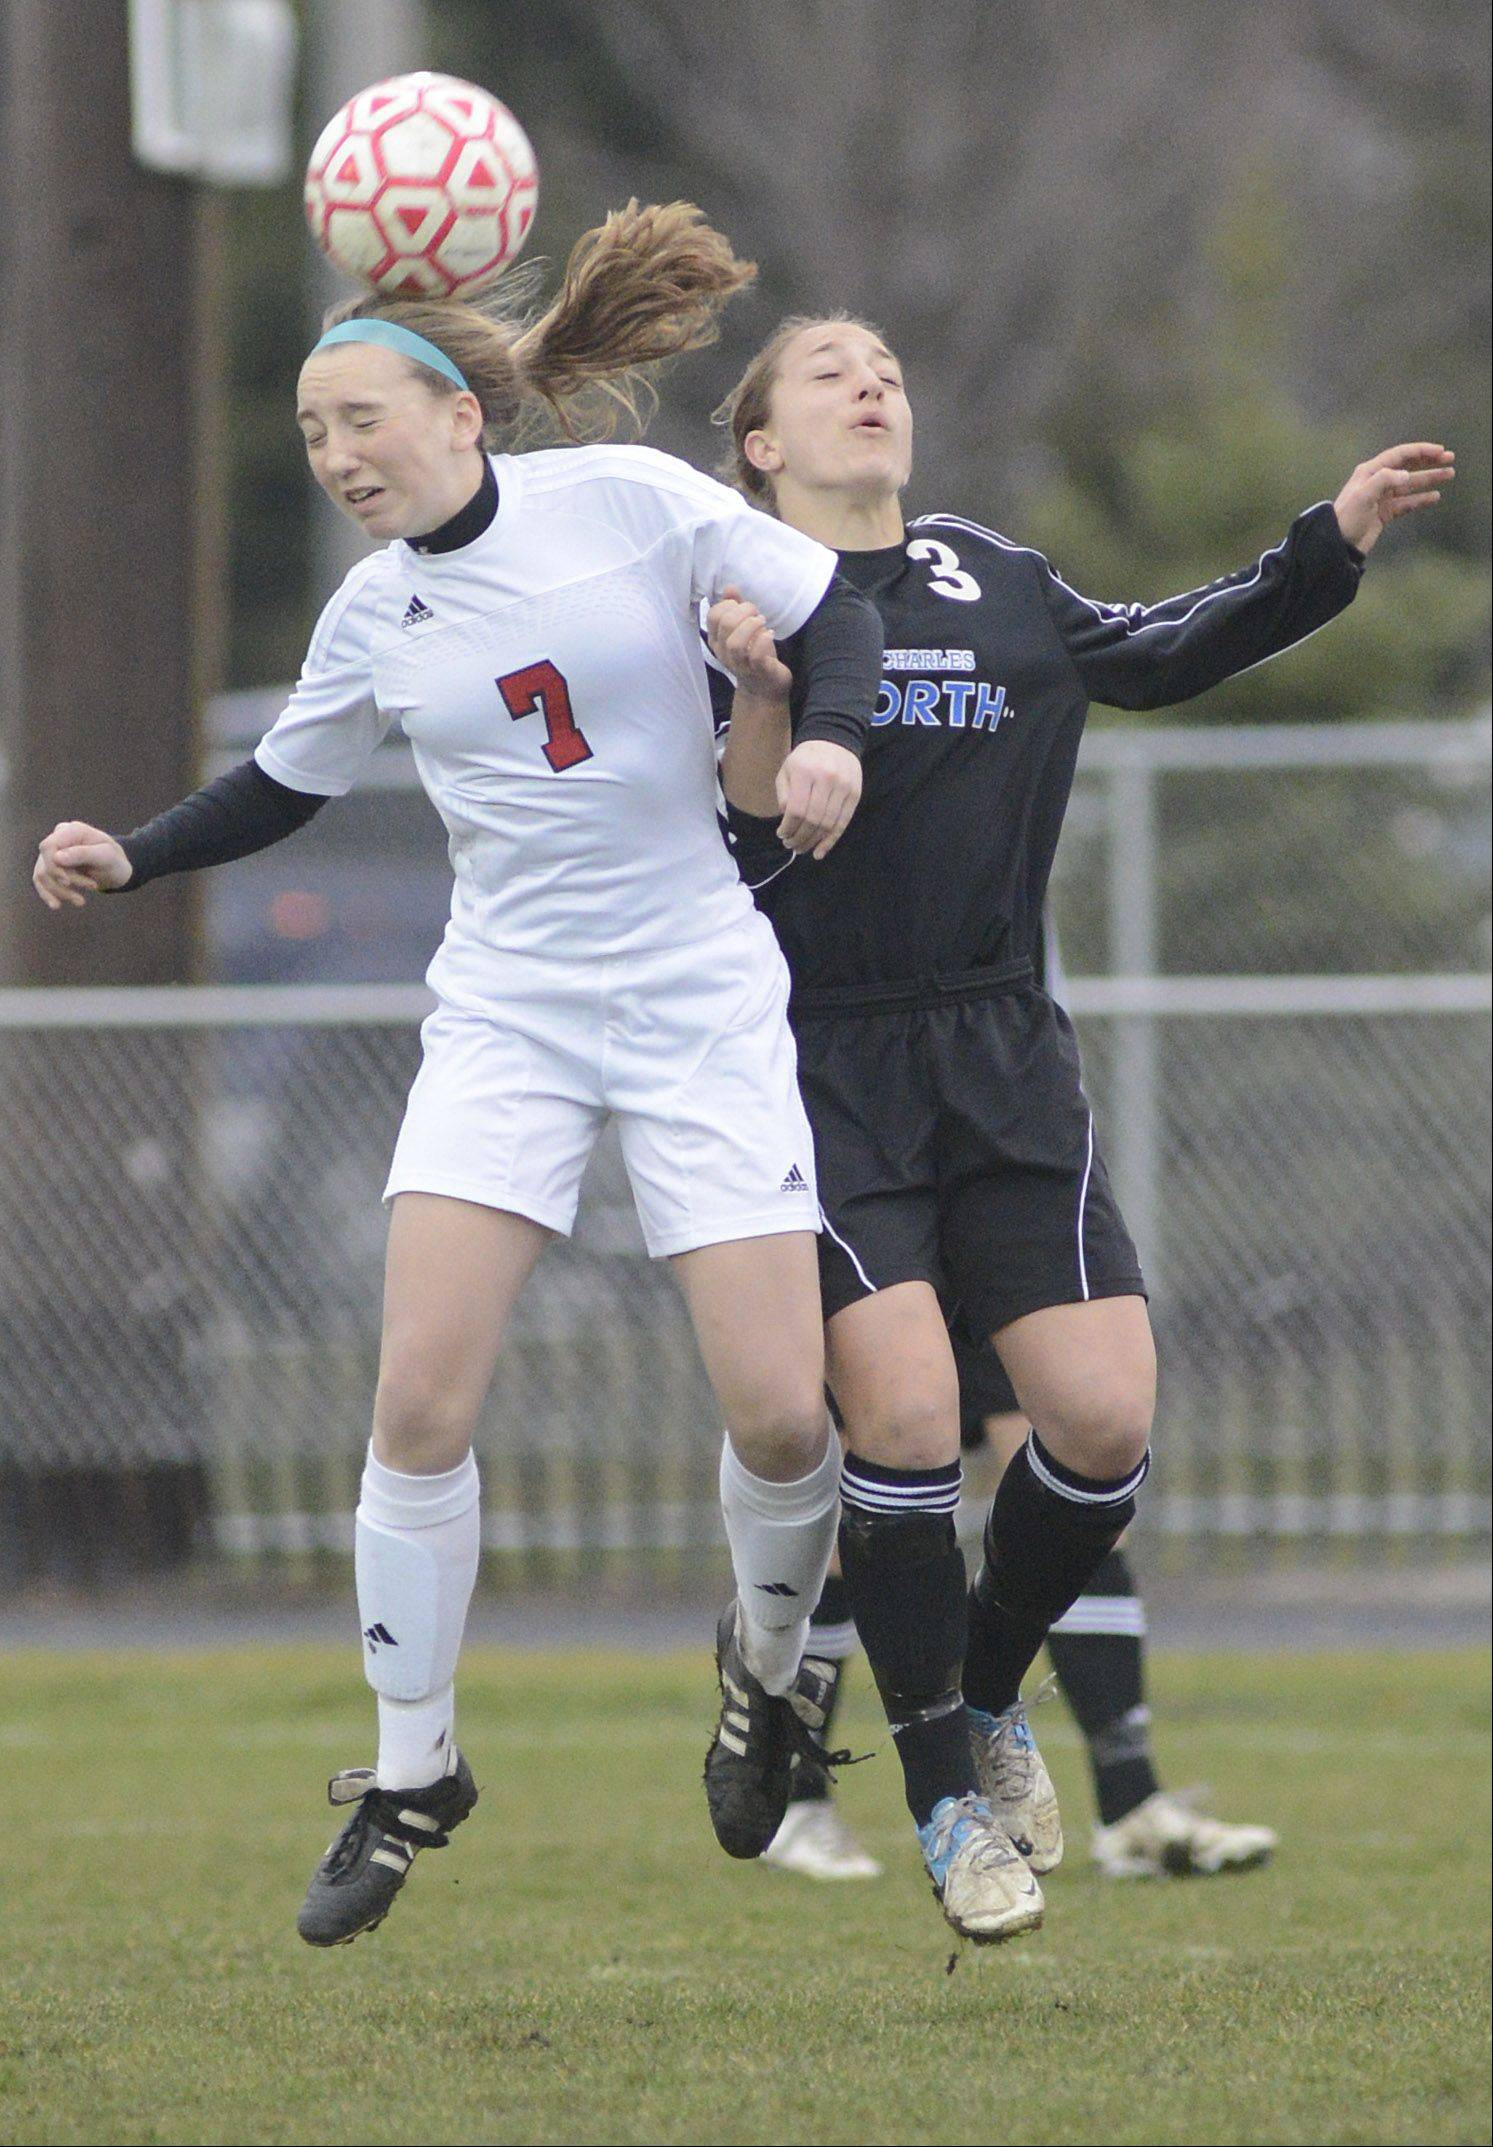 Batavia's Alexis Bryl and St. Charles North's Alex Gage both lead to head the ball in the first half on Thursday, April 11.